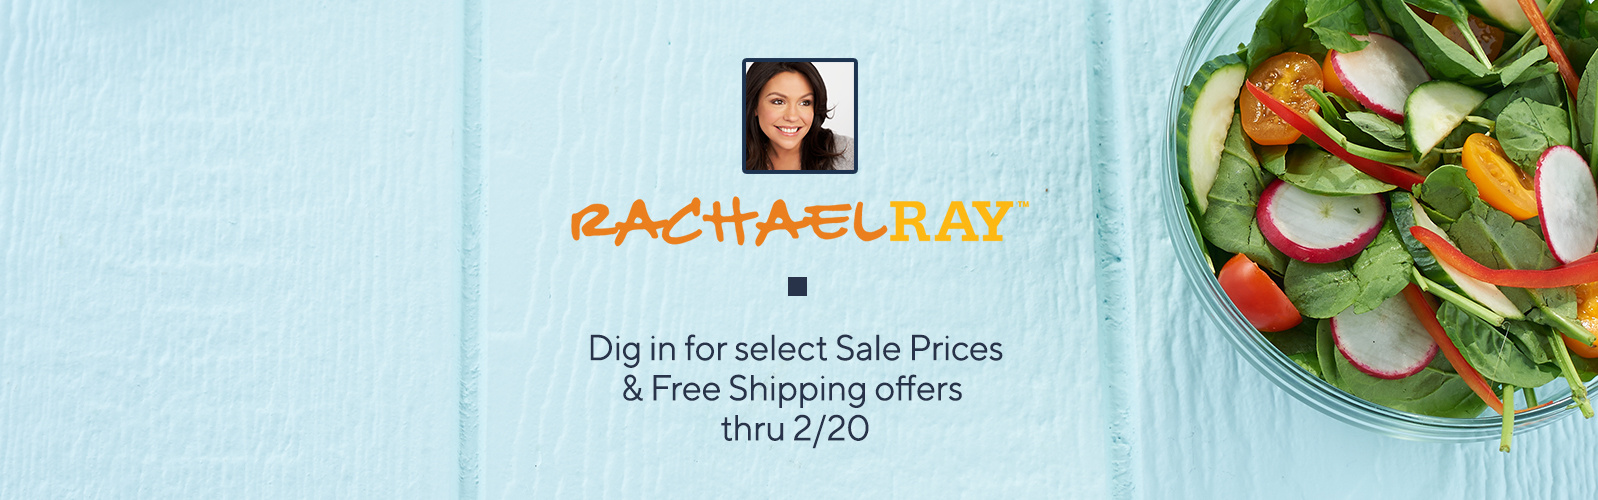 Rachel Ray, Dig in for select Sale Prices & Free Shipping offers thru 2/20